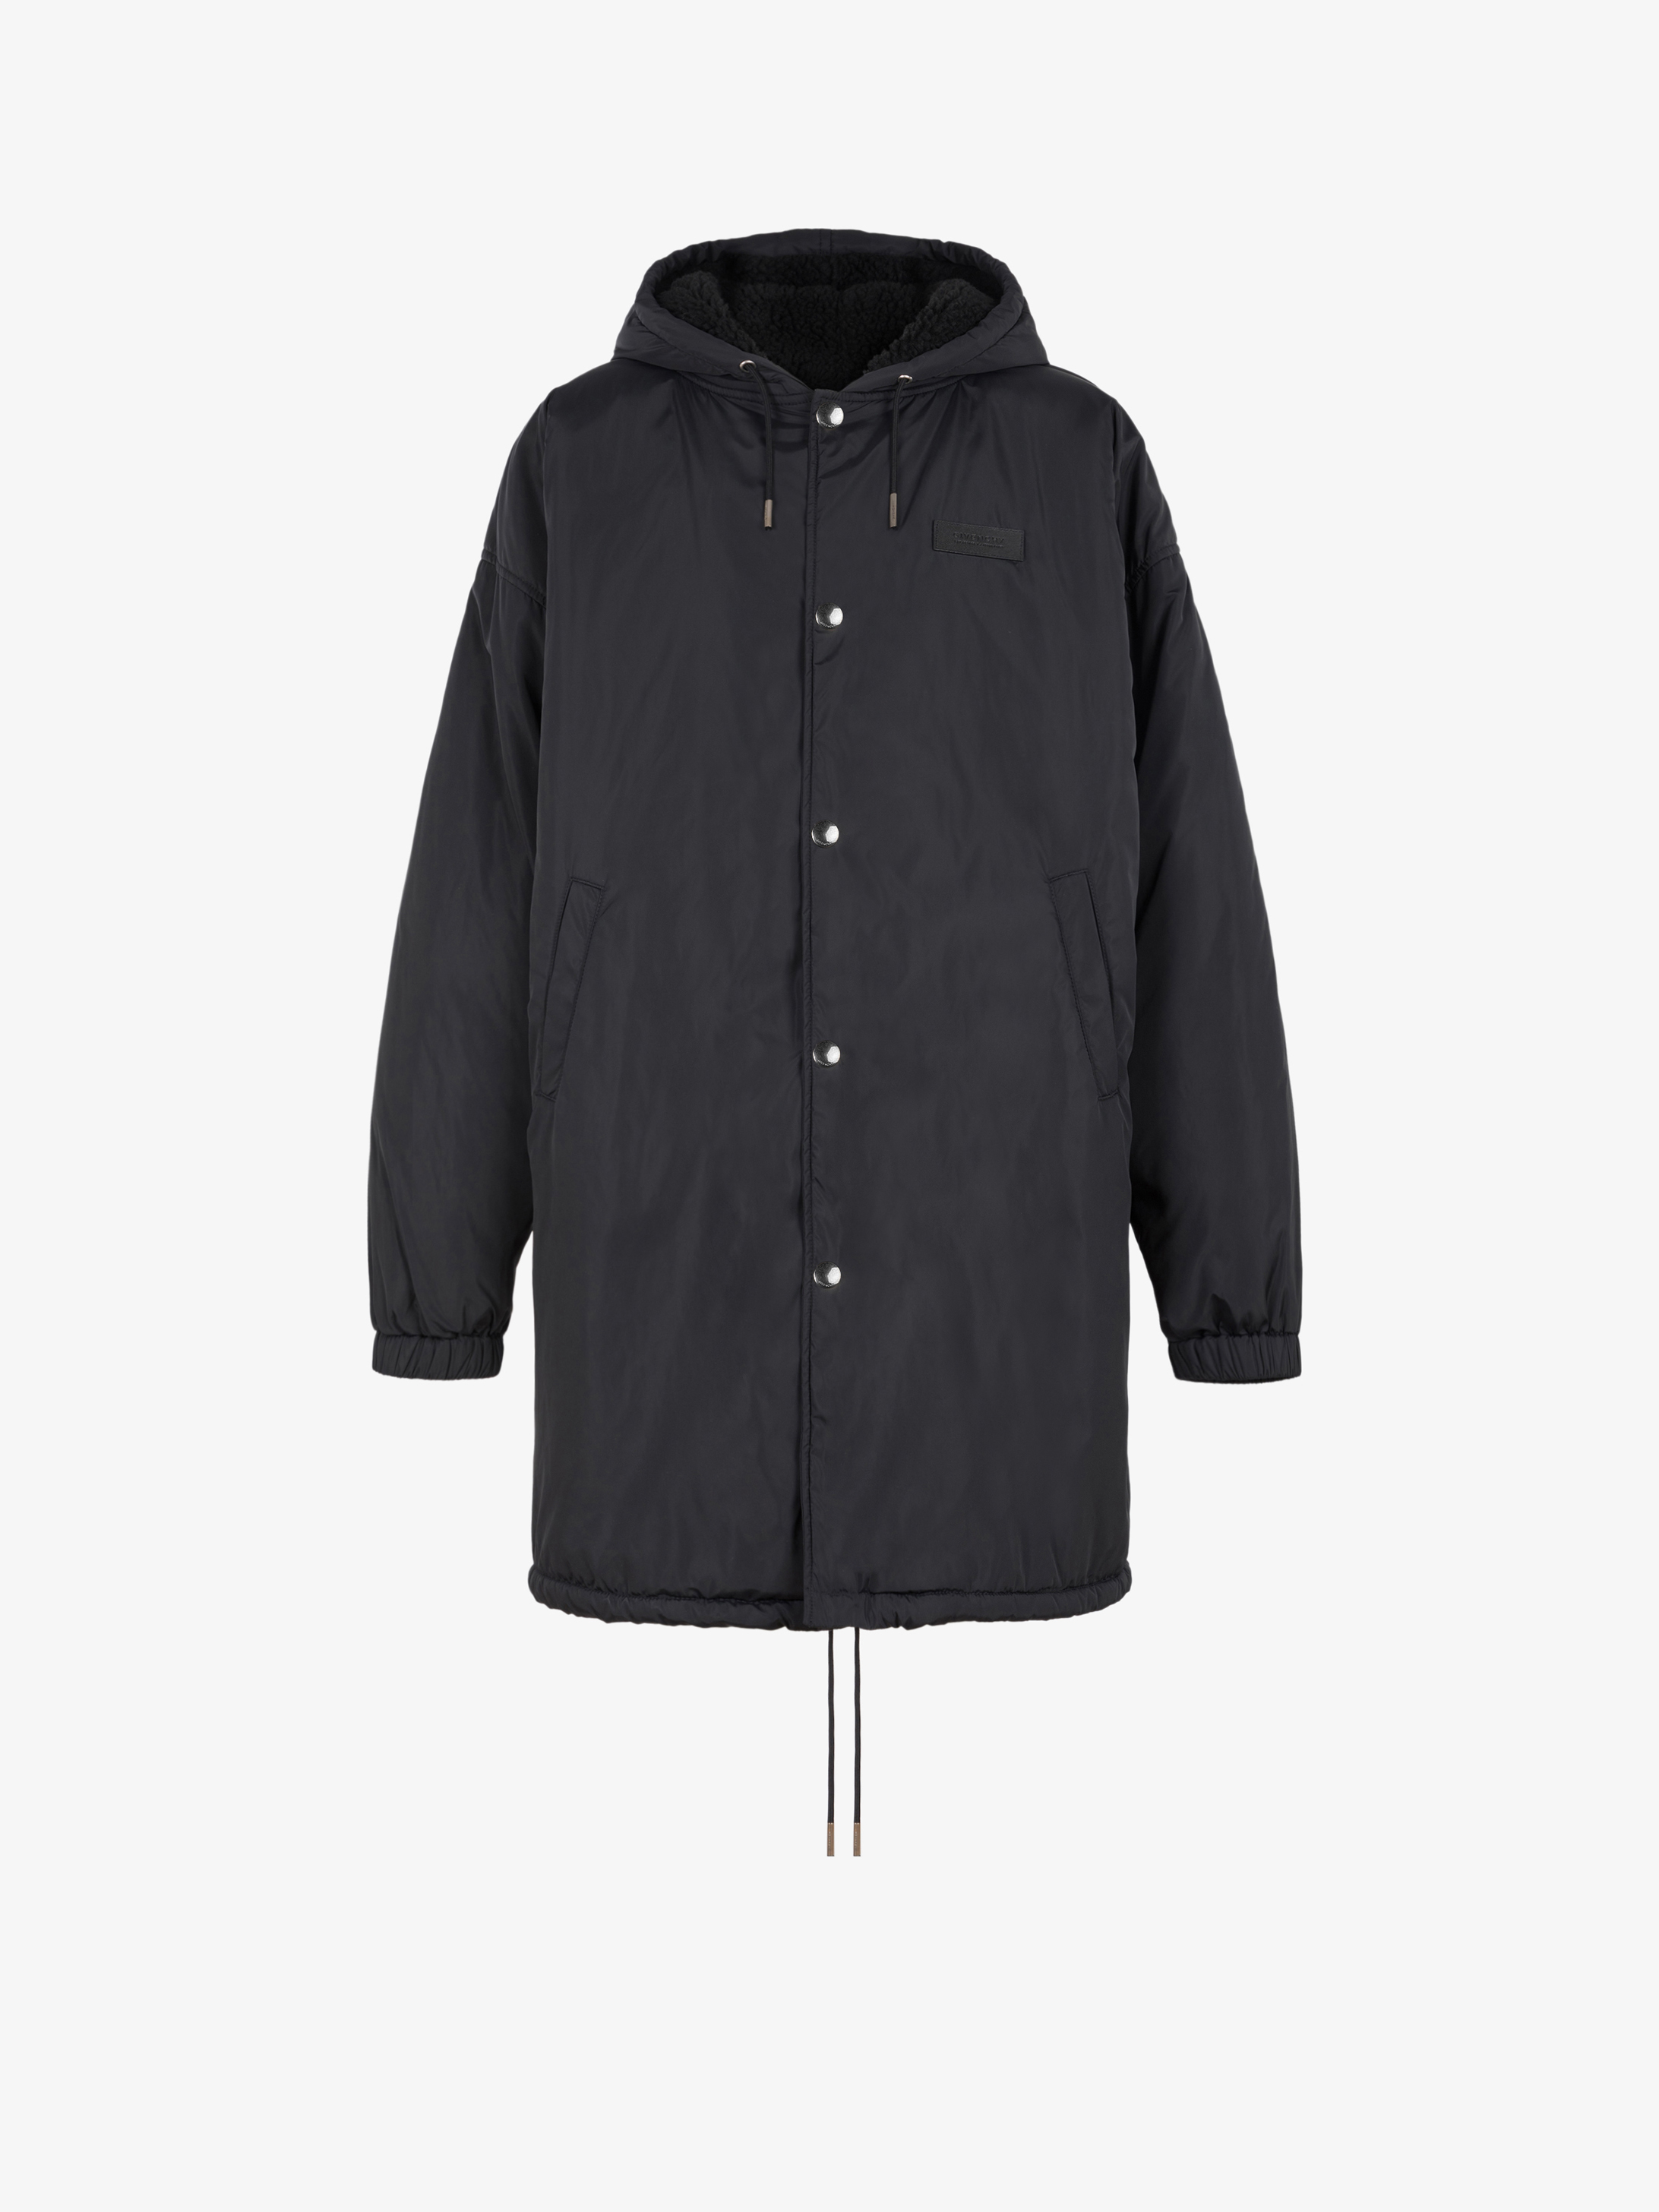 Studio Homme GIVENCHY parka in nylon